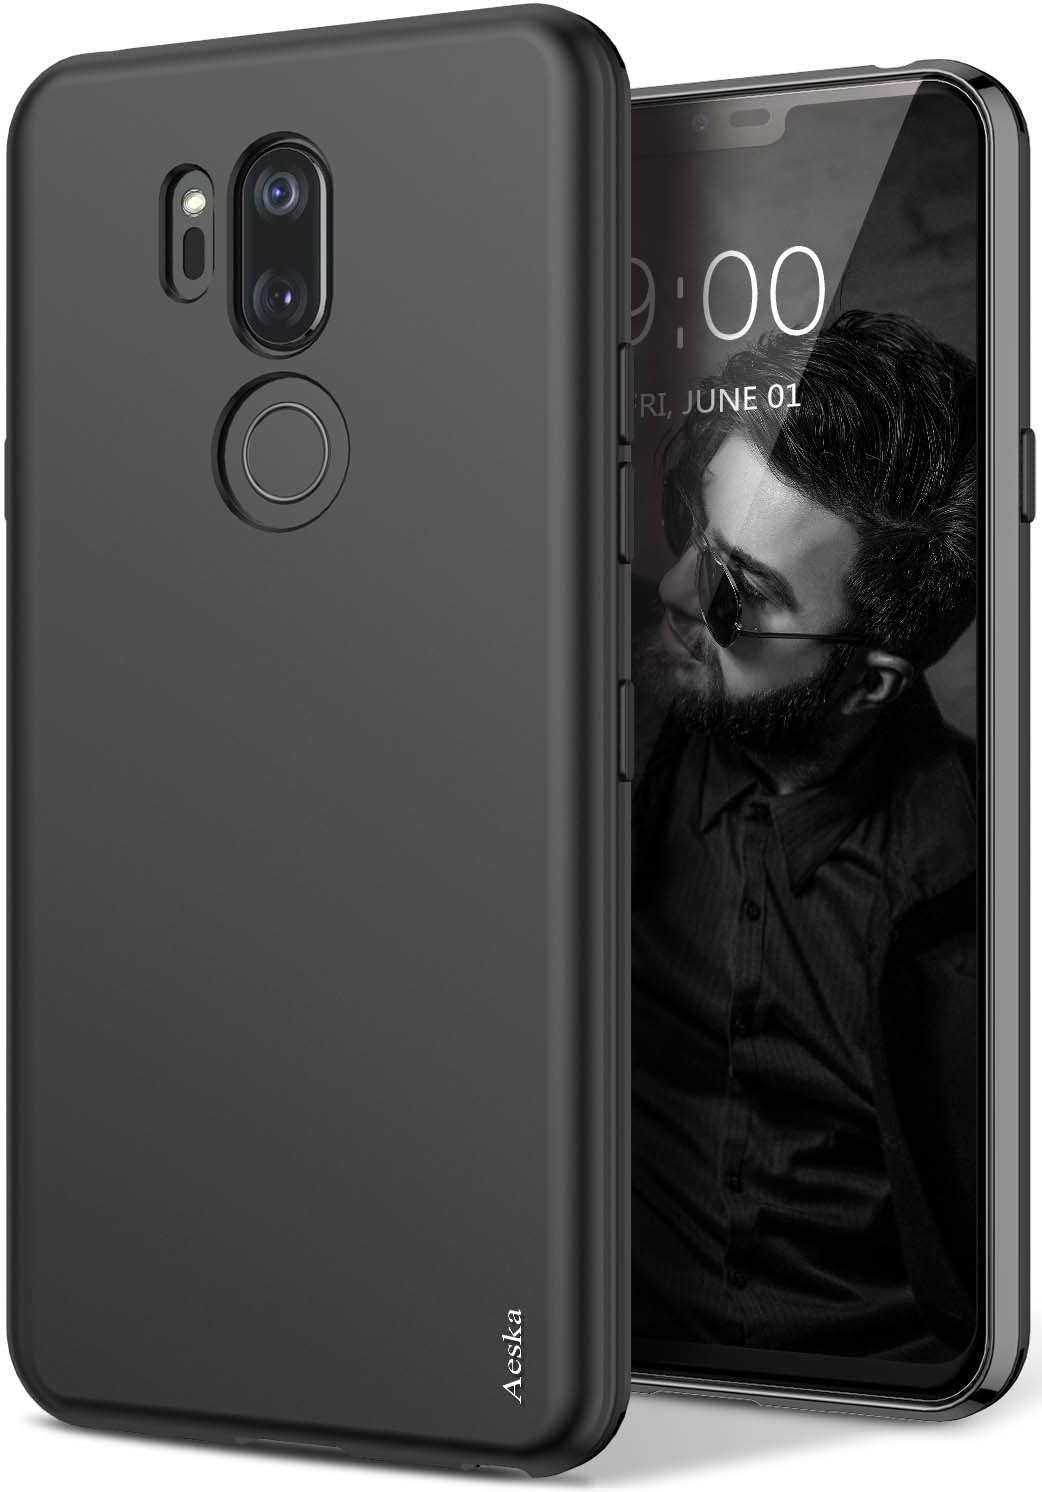 Aeska LG G7 Case, LG G7 ThinQ Case, Ultra [Slim Thin] Flexible TPU Gel Rubber Soft Skin Silicone Protective Case Cover for LG G7 / LG G7 ThinQ (Black)